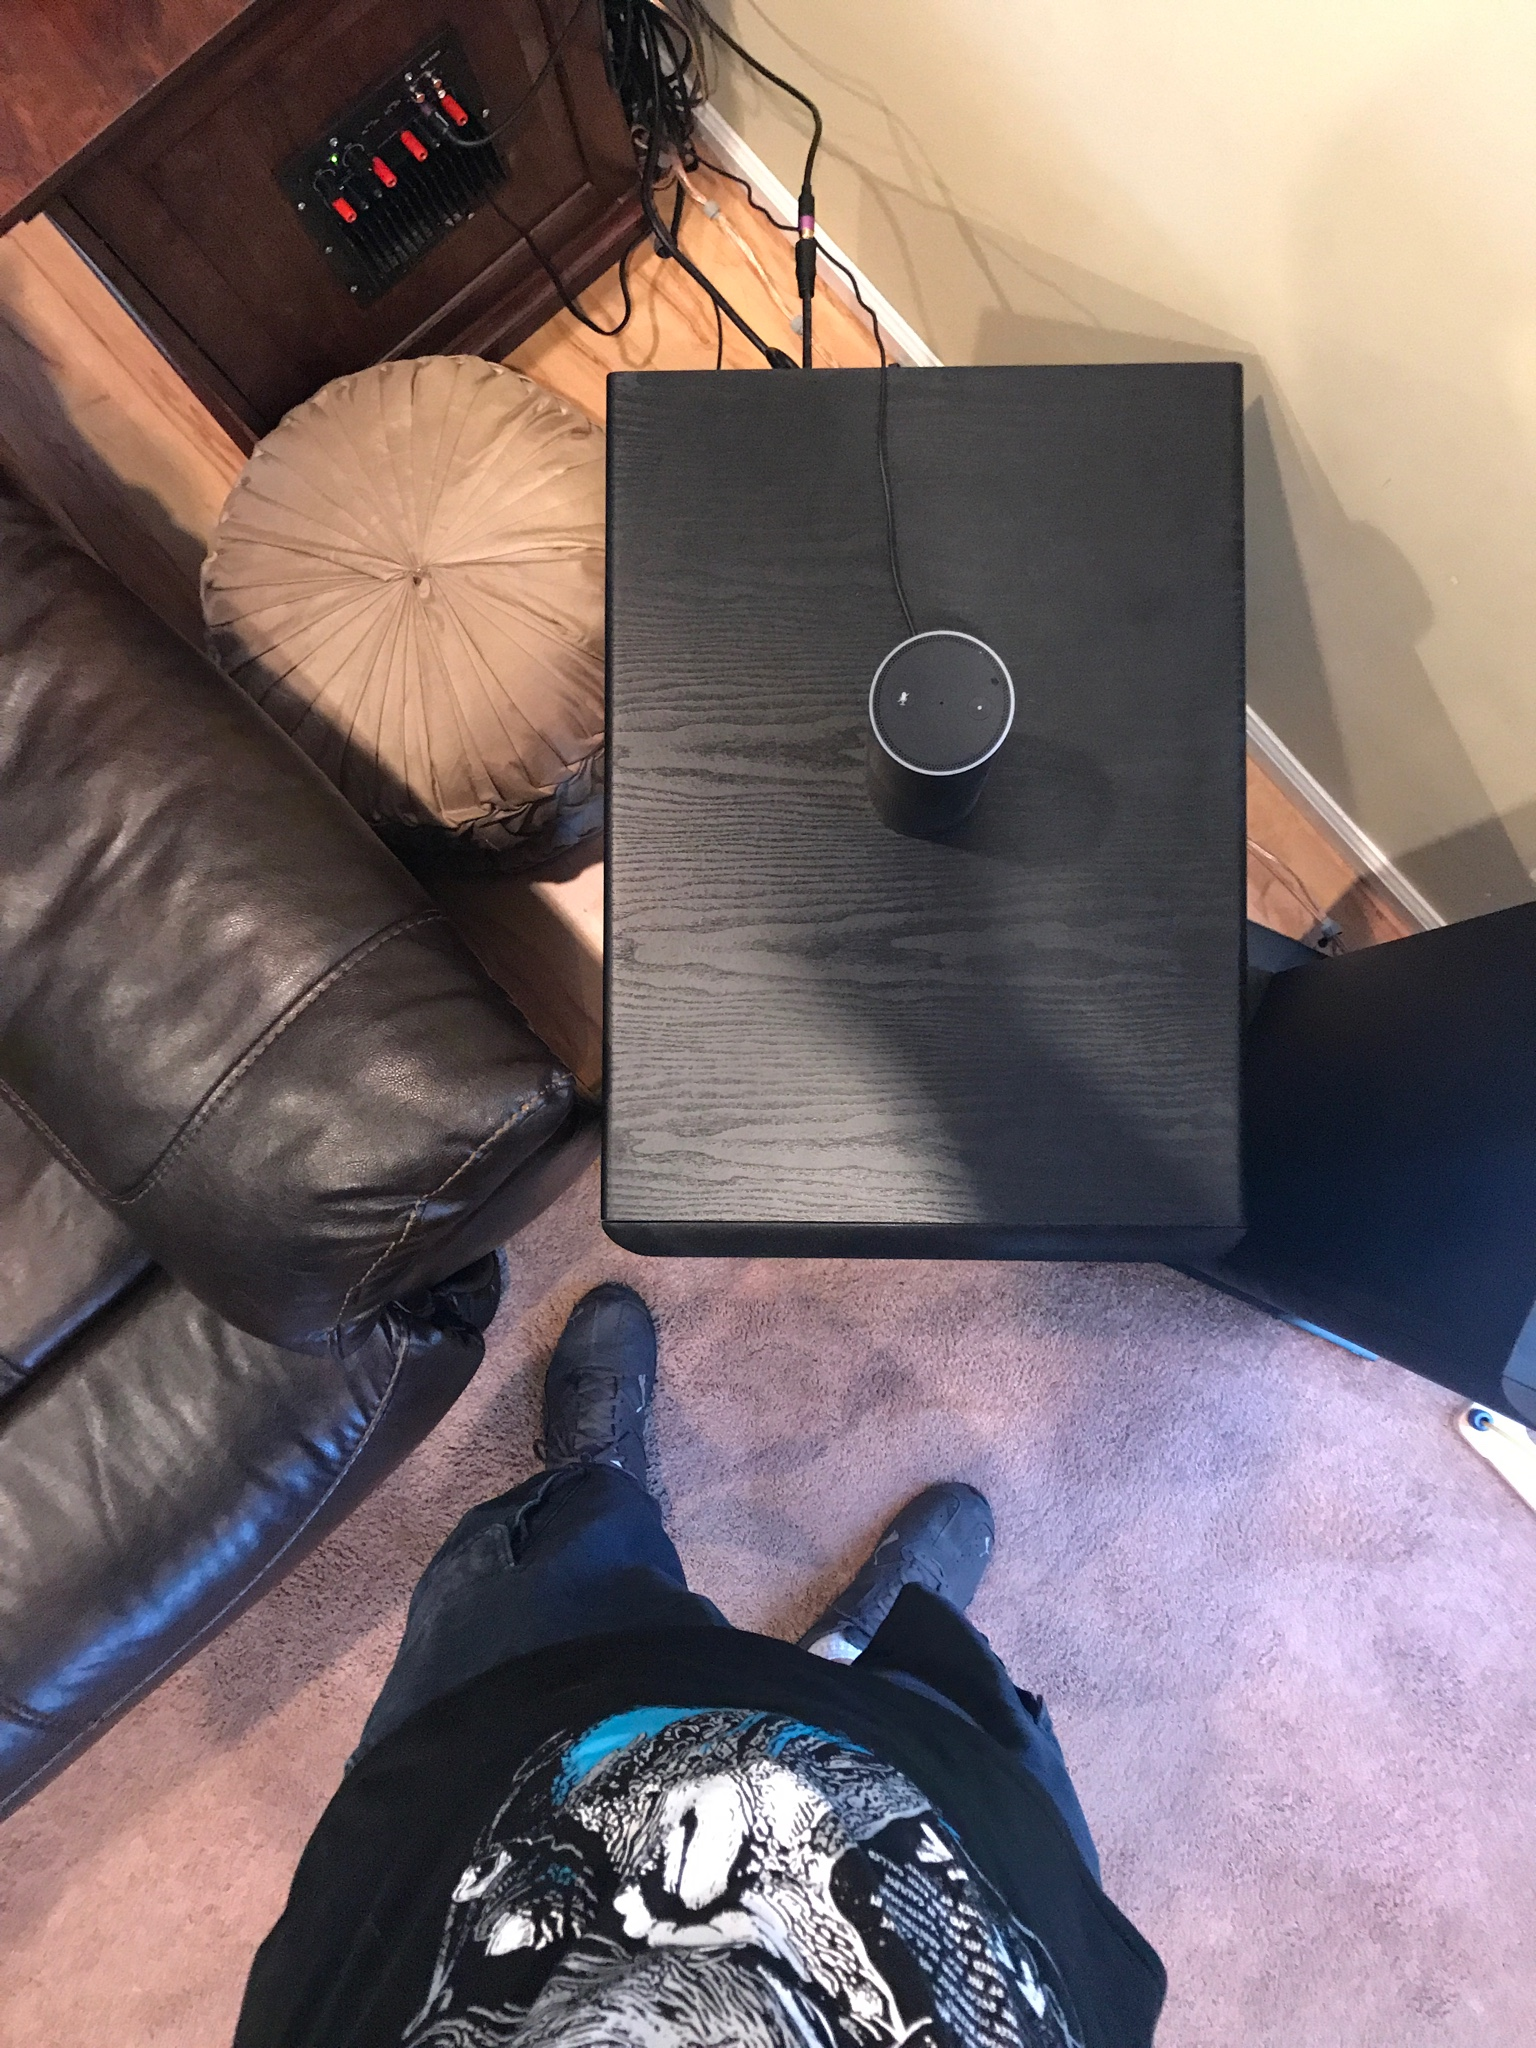 Official Rythmik Audio Subwoofer thread - Page 976 - AVS ...